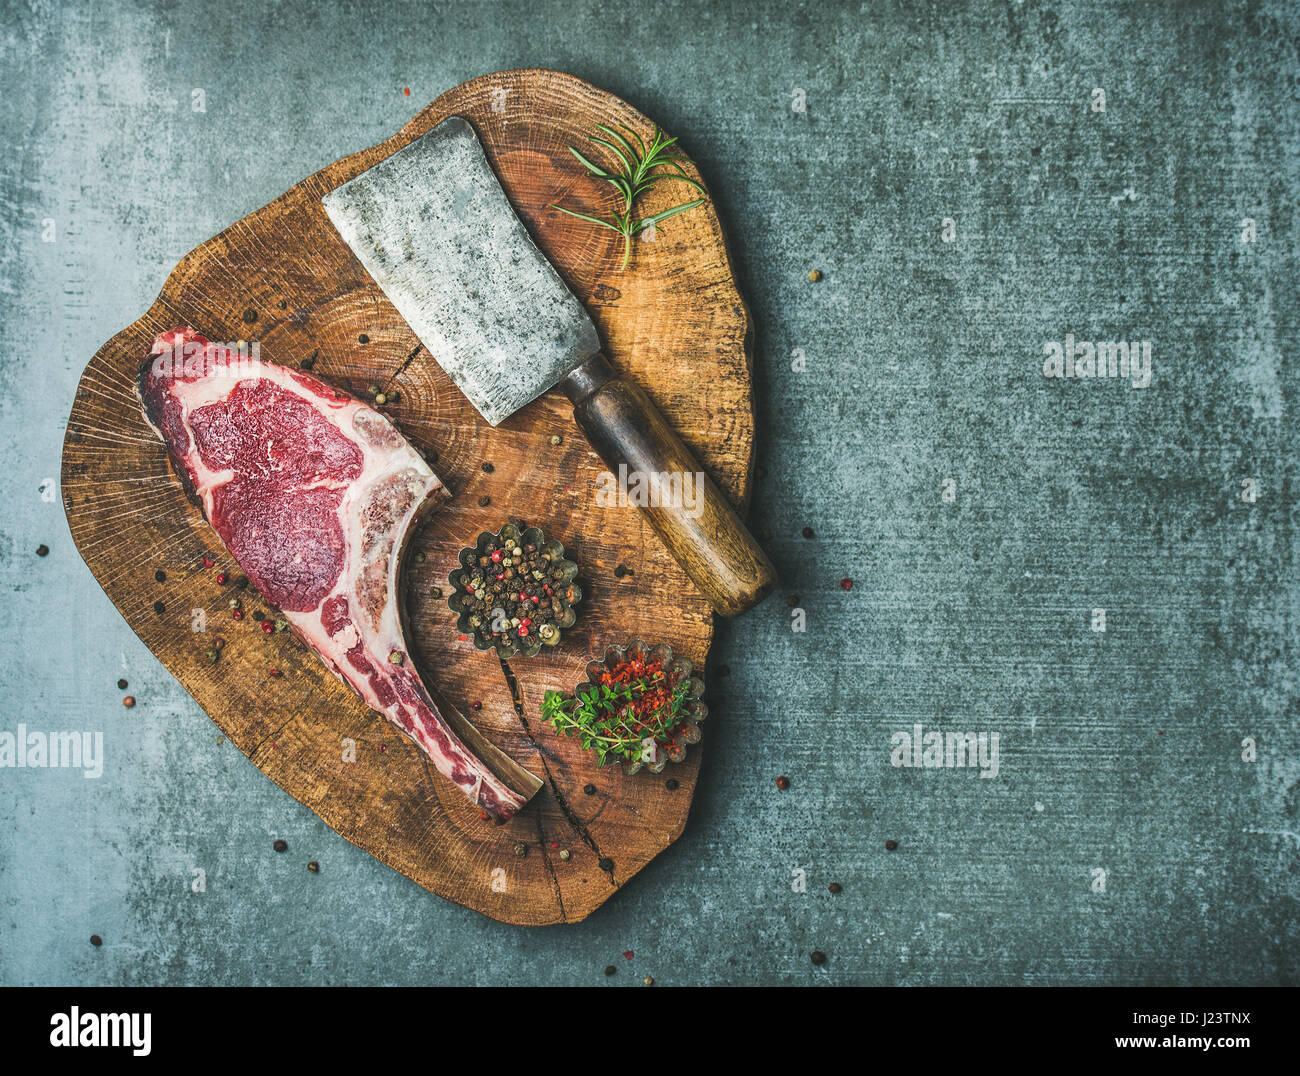 Dry aged uncooked beef rib eye steak, copy space - Stock Image